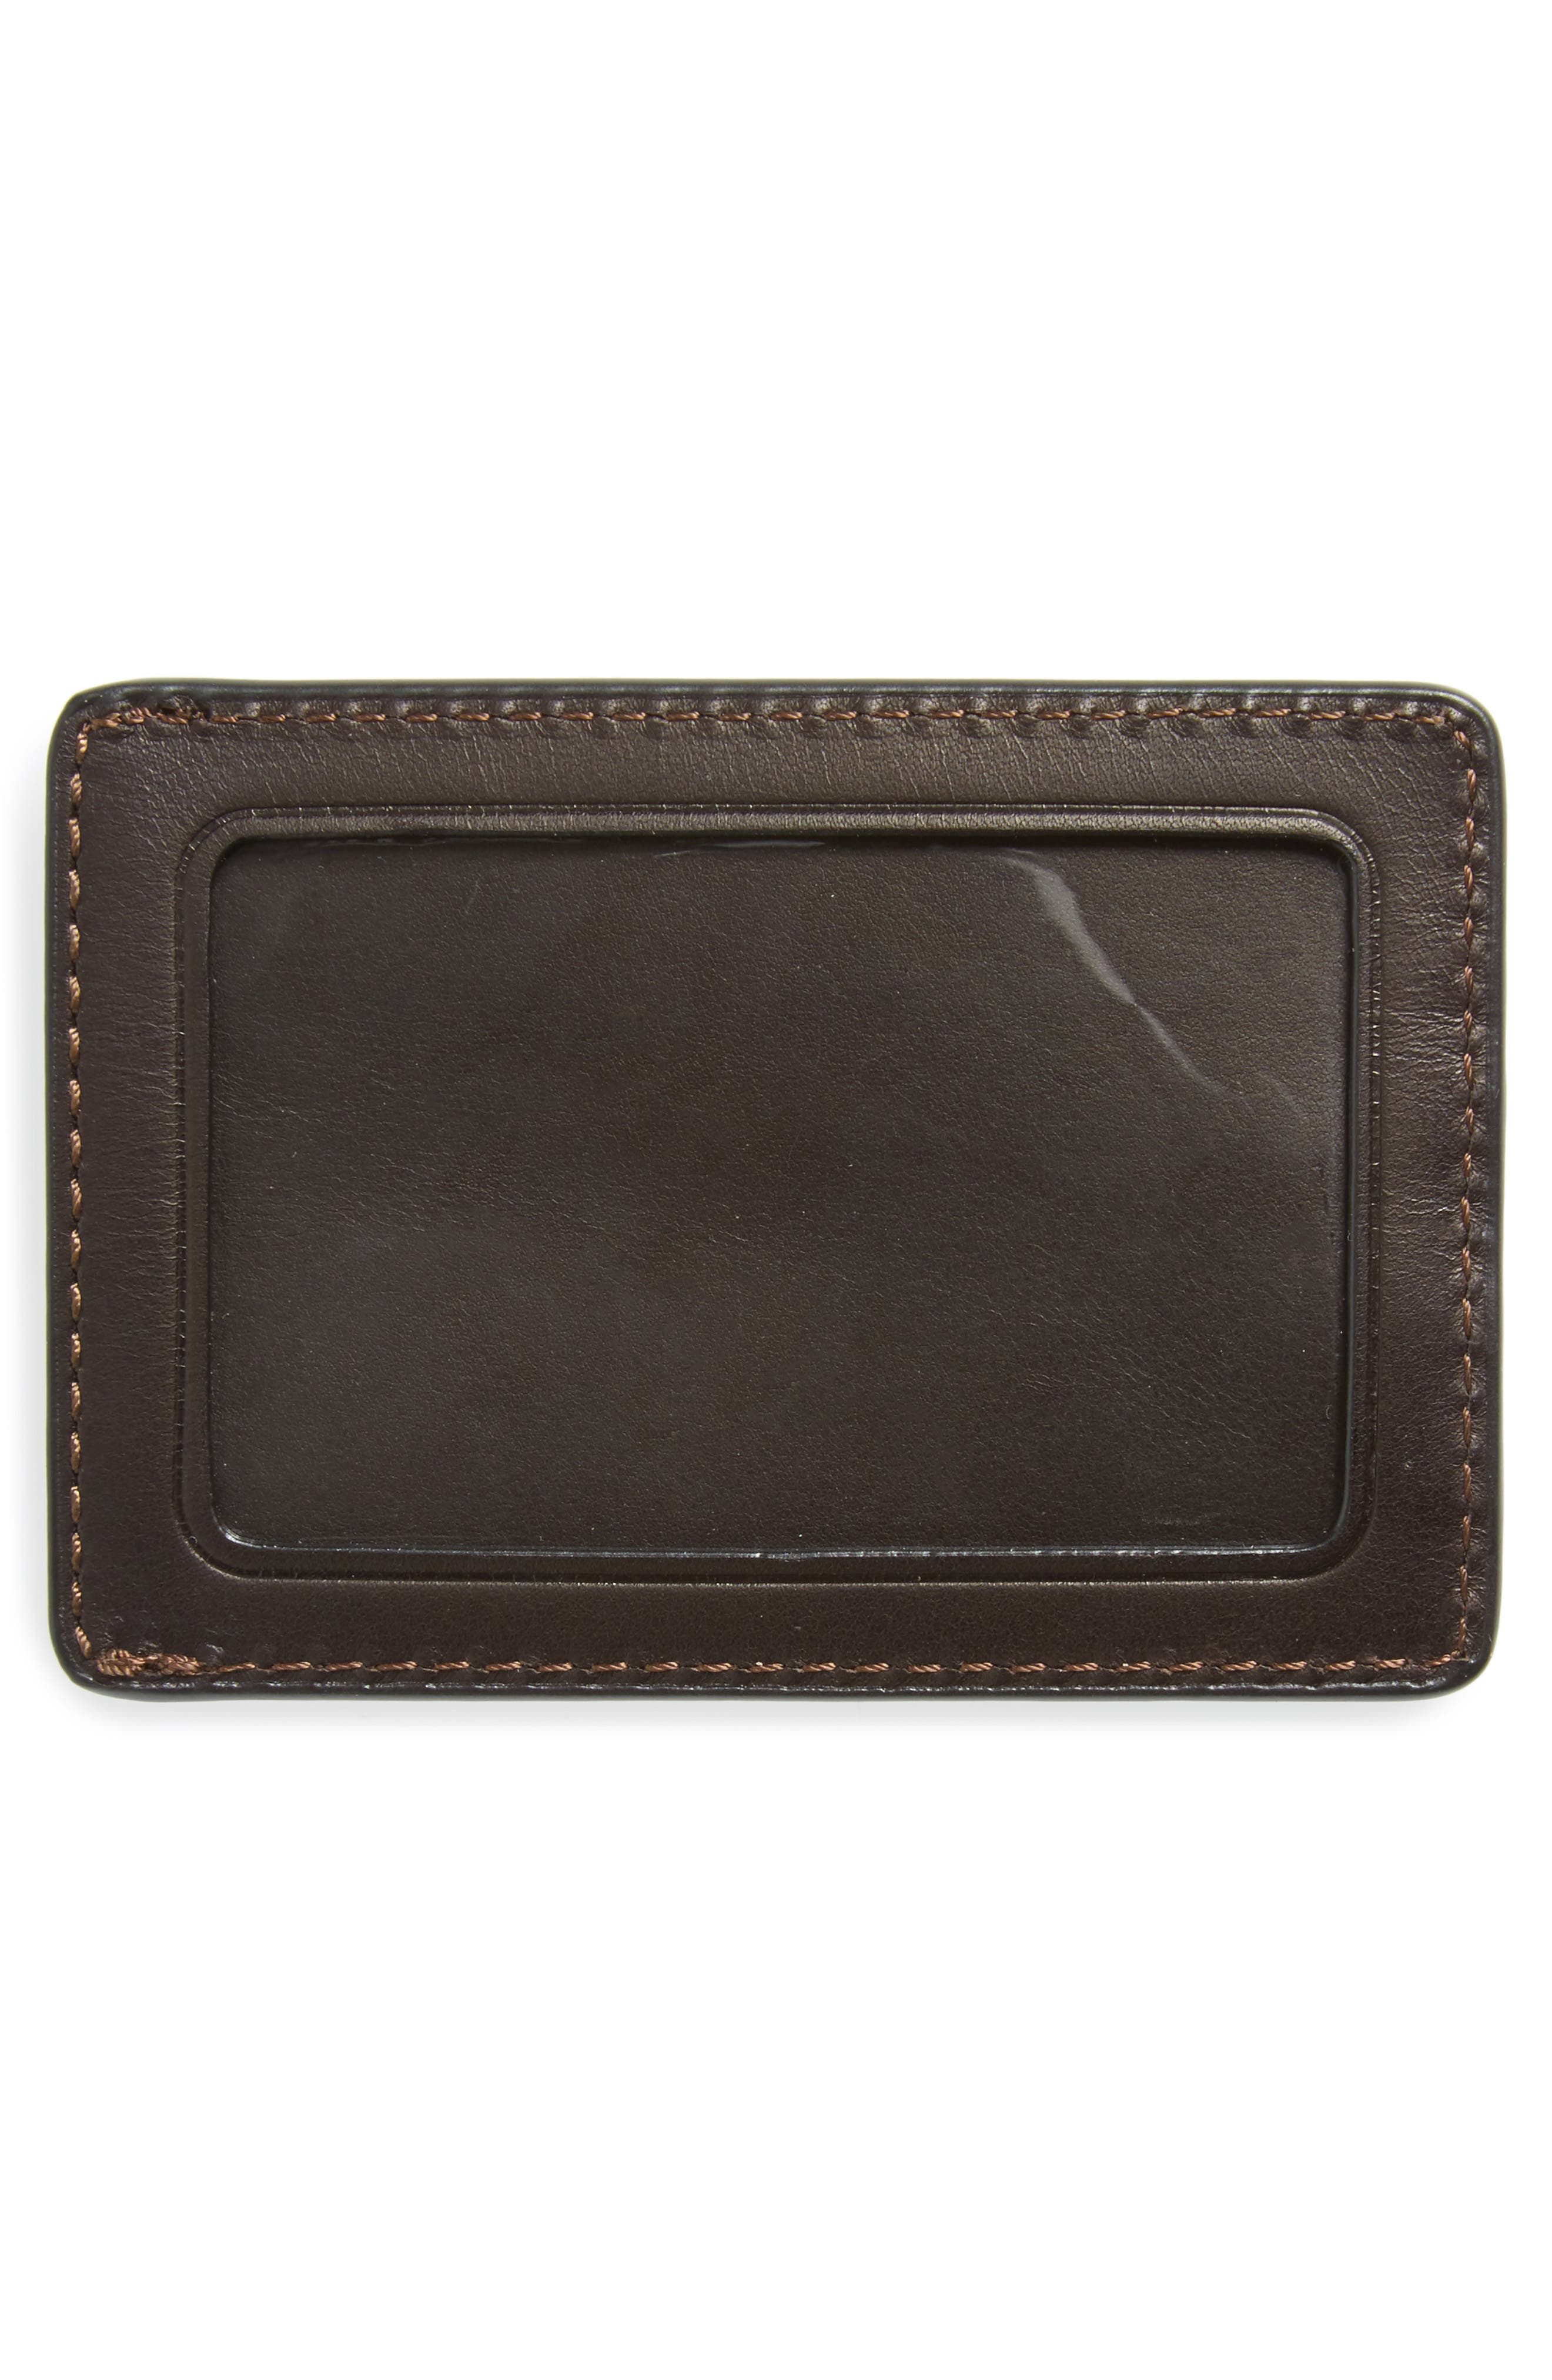 Oliver Leather Card Case,                             Alternate thumbnail 2, color,                             Dark Brown